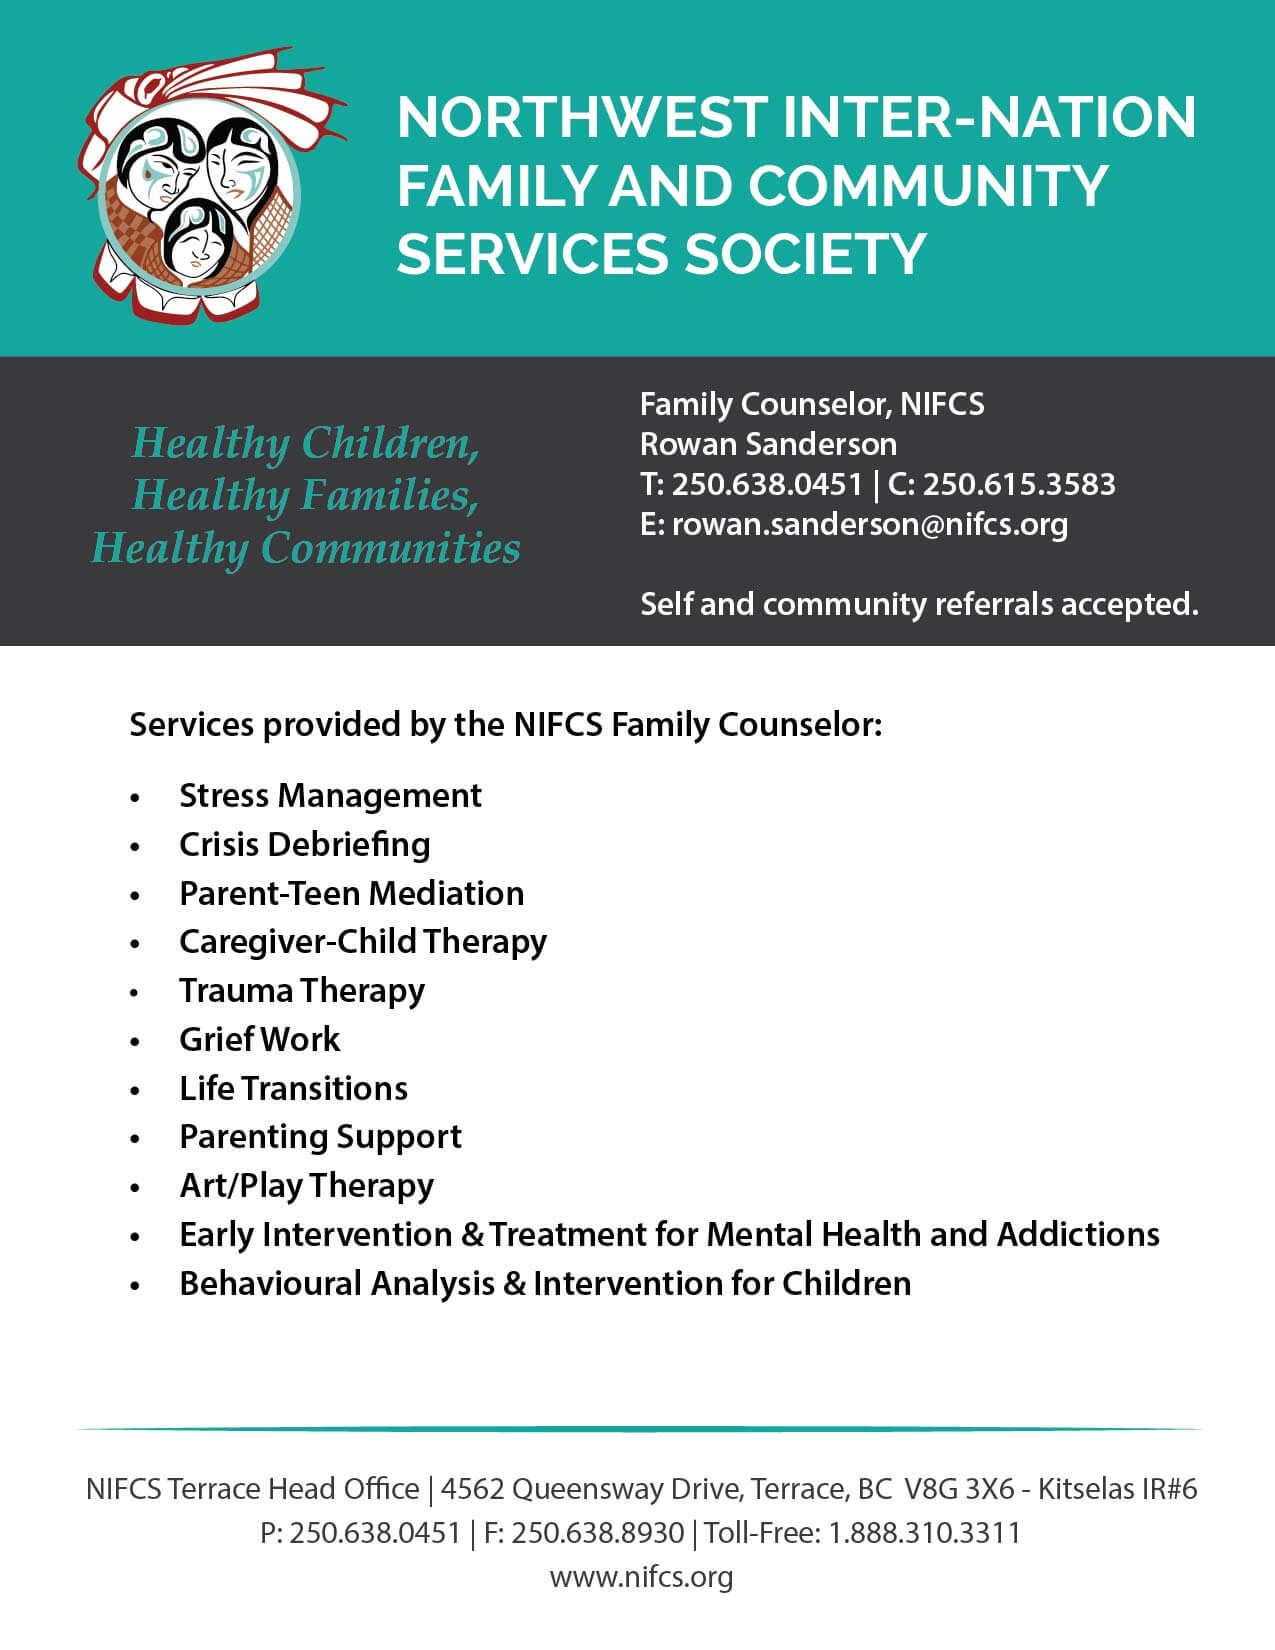 Services Provided by the NIFCS Family Counselor